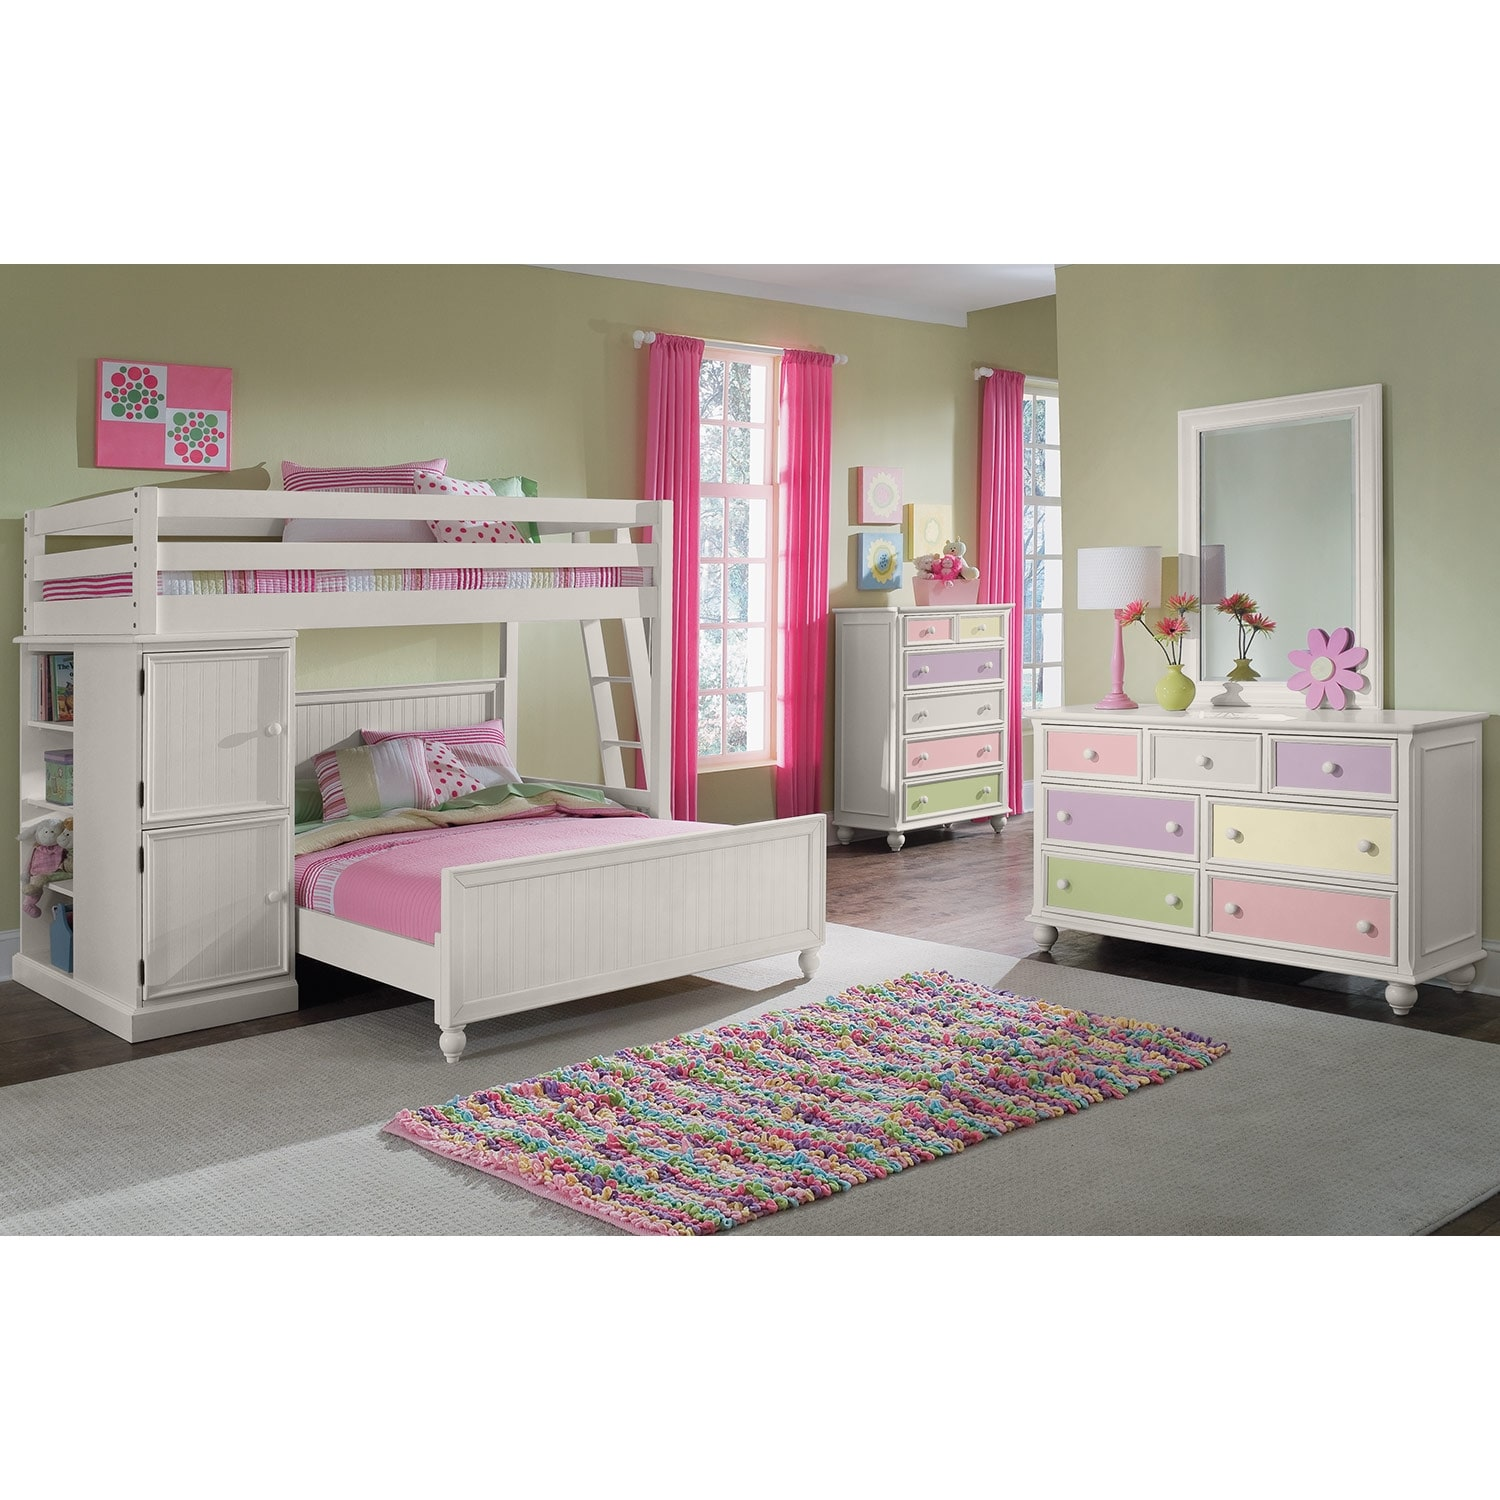 Colorworks Loft Bed with Full Bed - White | Value City ...